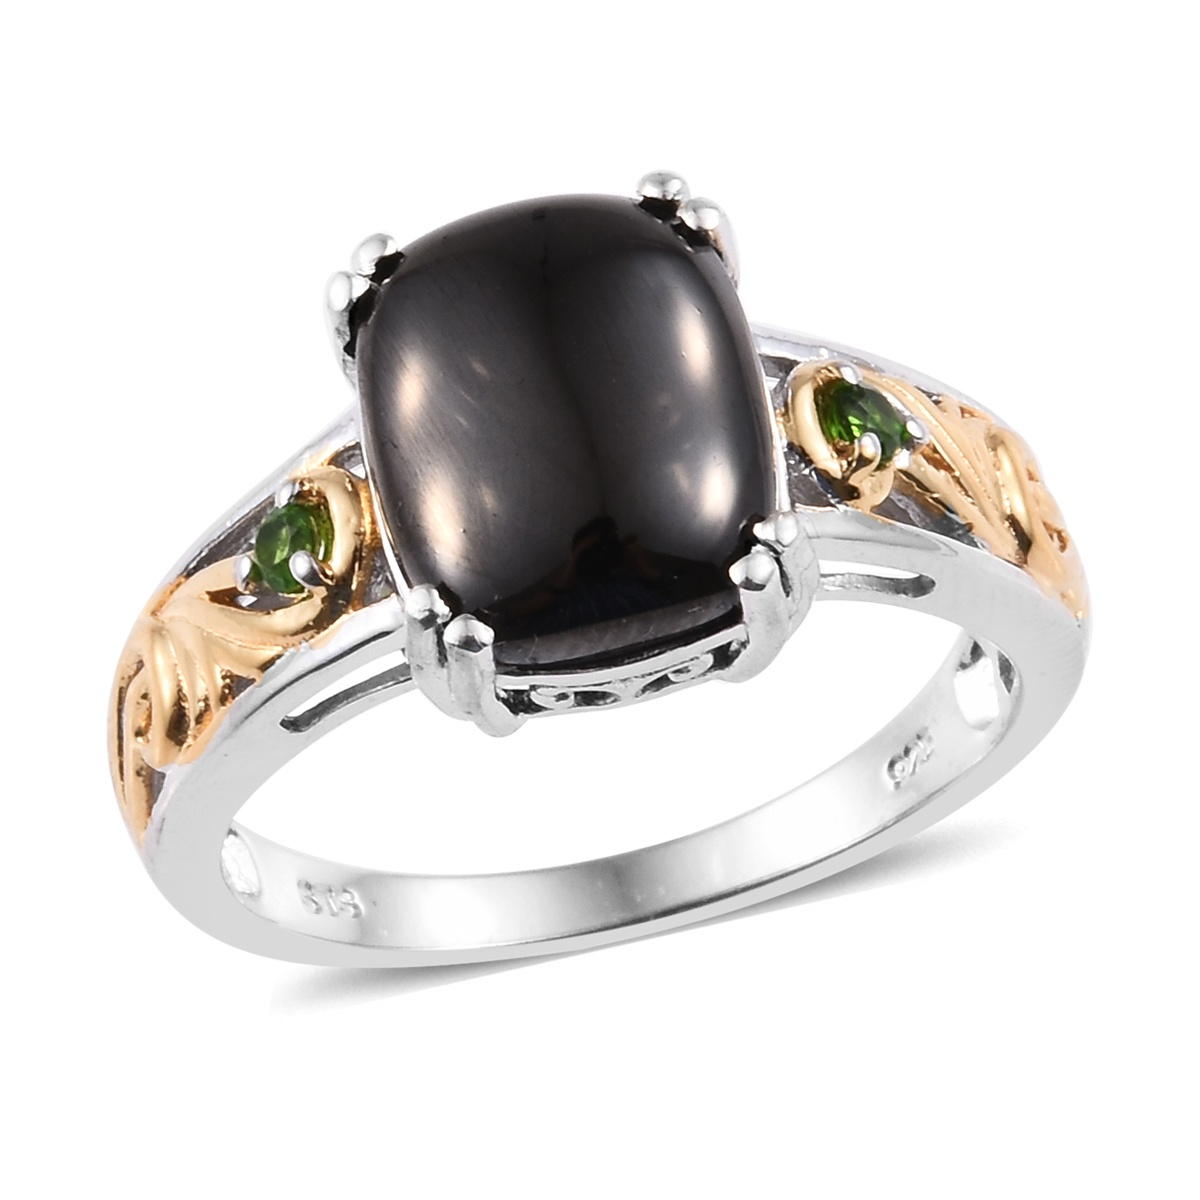 Silver Shungite, Russian Diopside Ring in Vermeil YG & Platinum Over  Sterling Silver (Size 7 0) 3 55 ctw